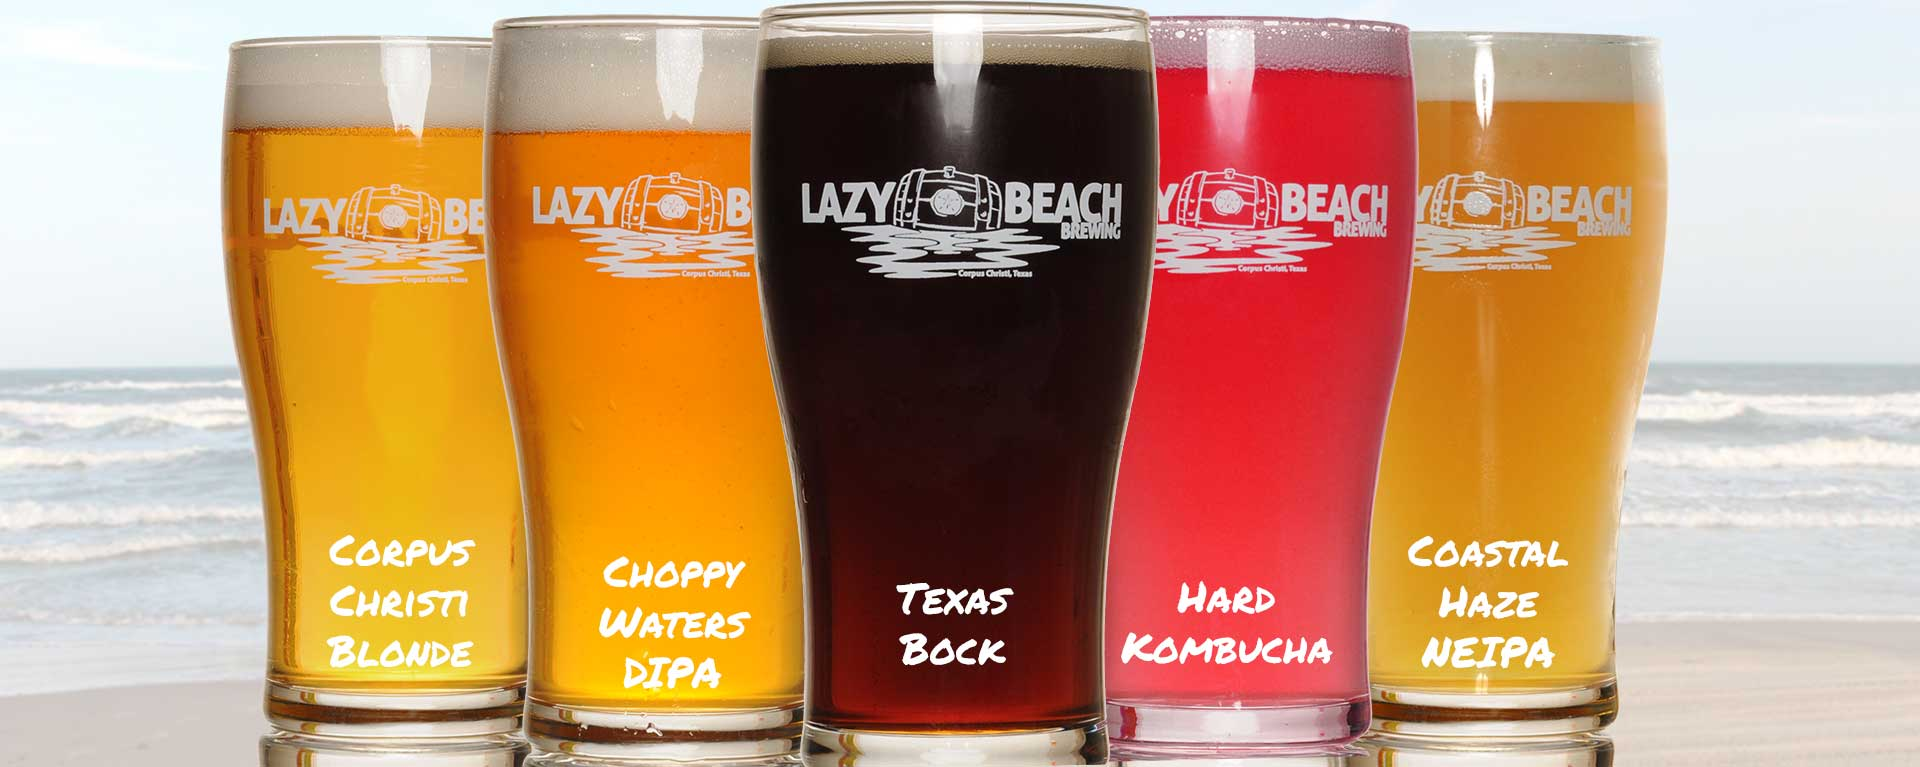 Lazy Beach Beers, Blonde, Texas Bock, Session IPA and Beach in Wheat